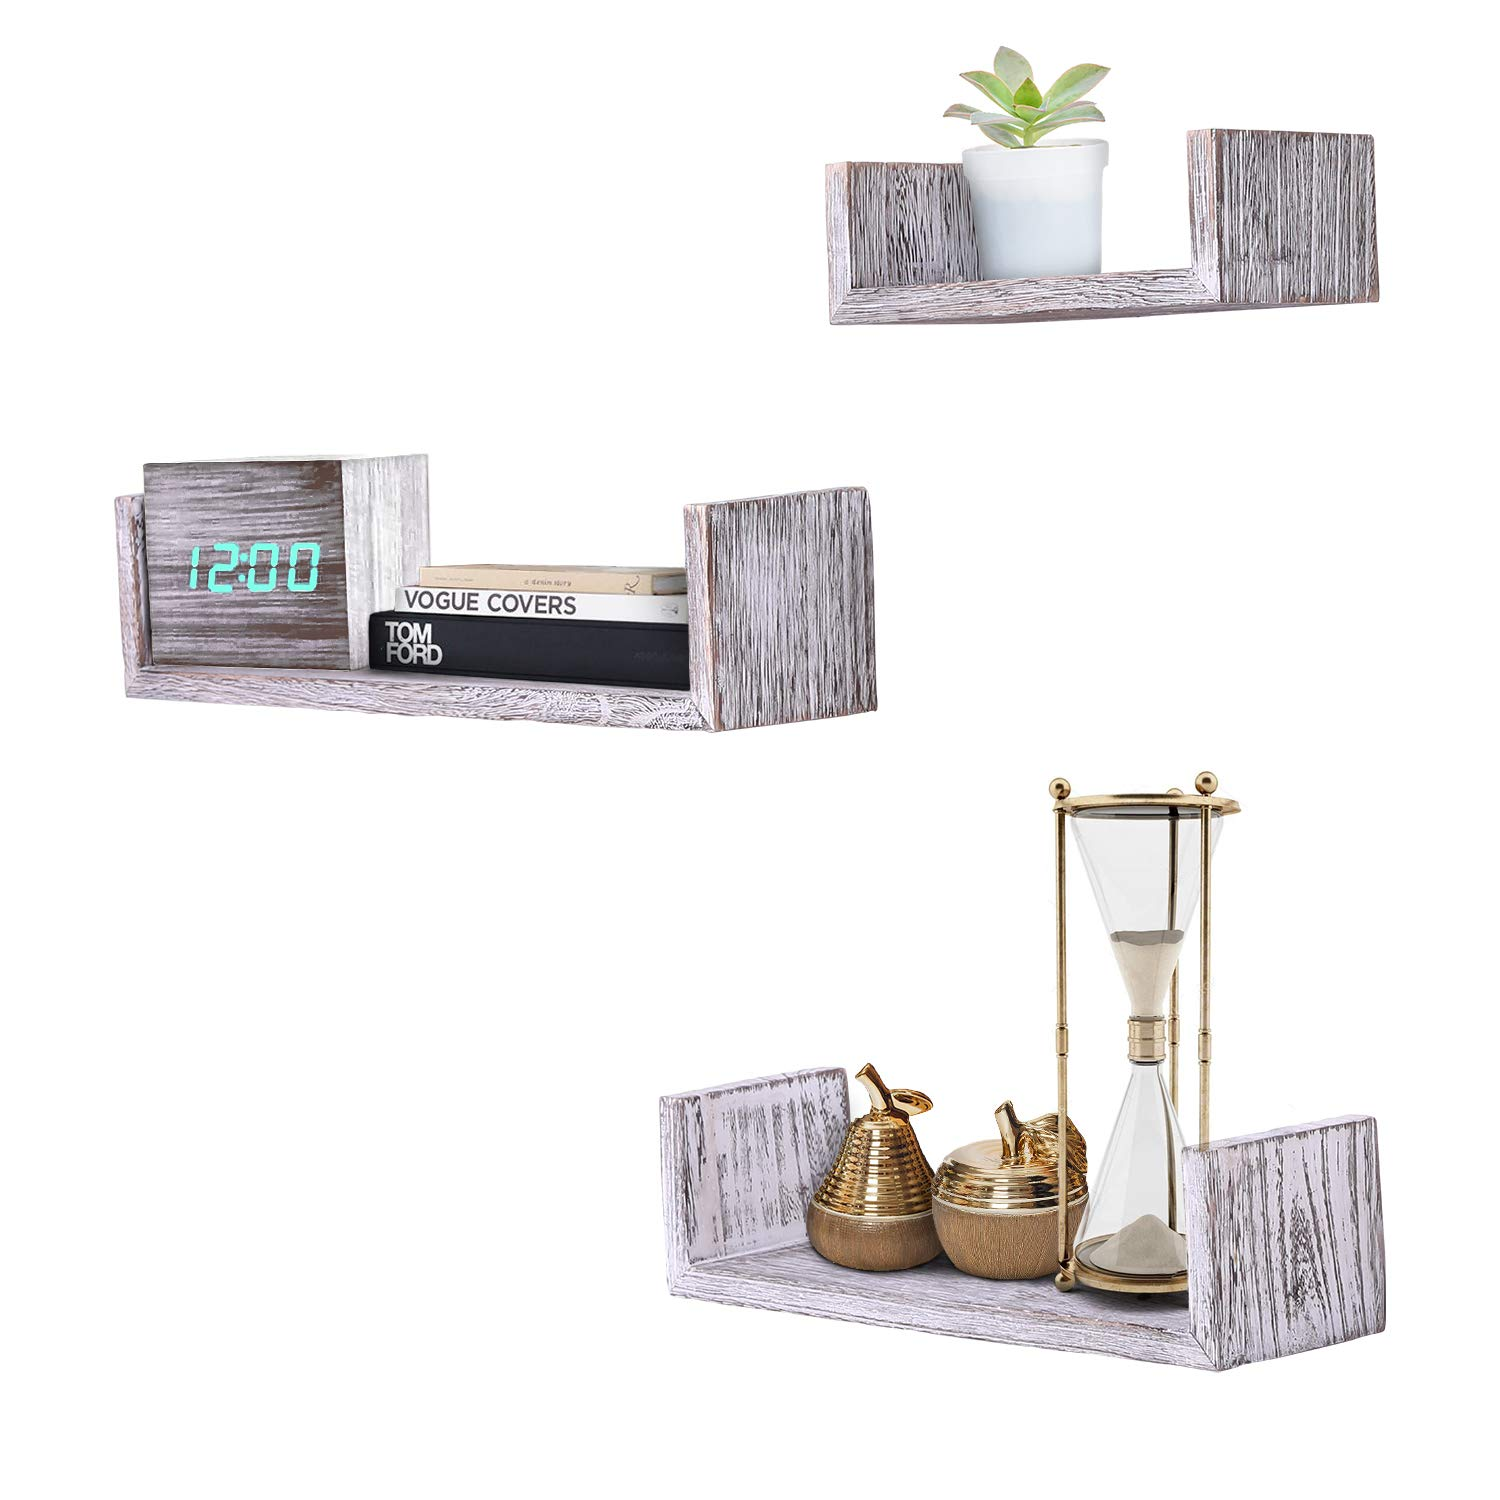 Rustic Wall Mounted U-Shaped Floating Shelves – Set of 3 – Large, medium  and Small – Screws and Anchors Included - Farmhouse Shelves for